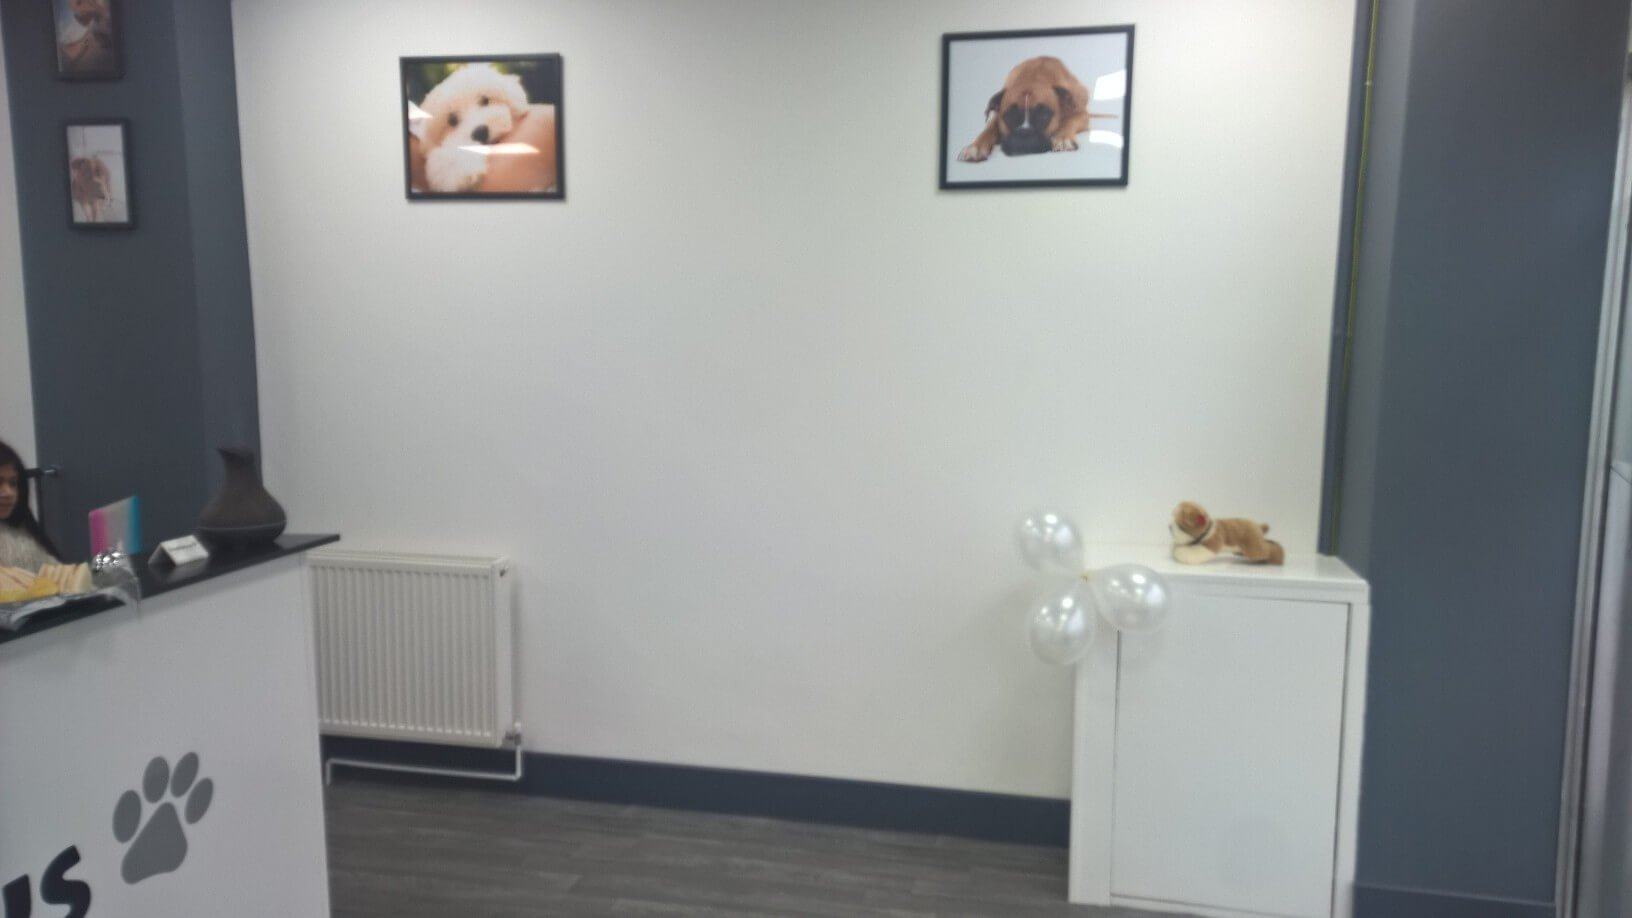 freshpaws front desk area